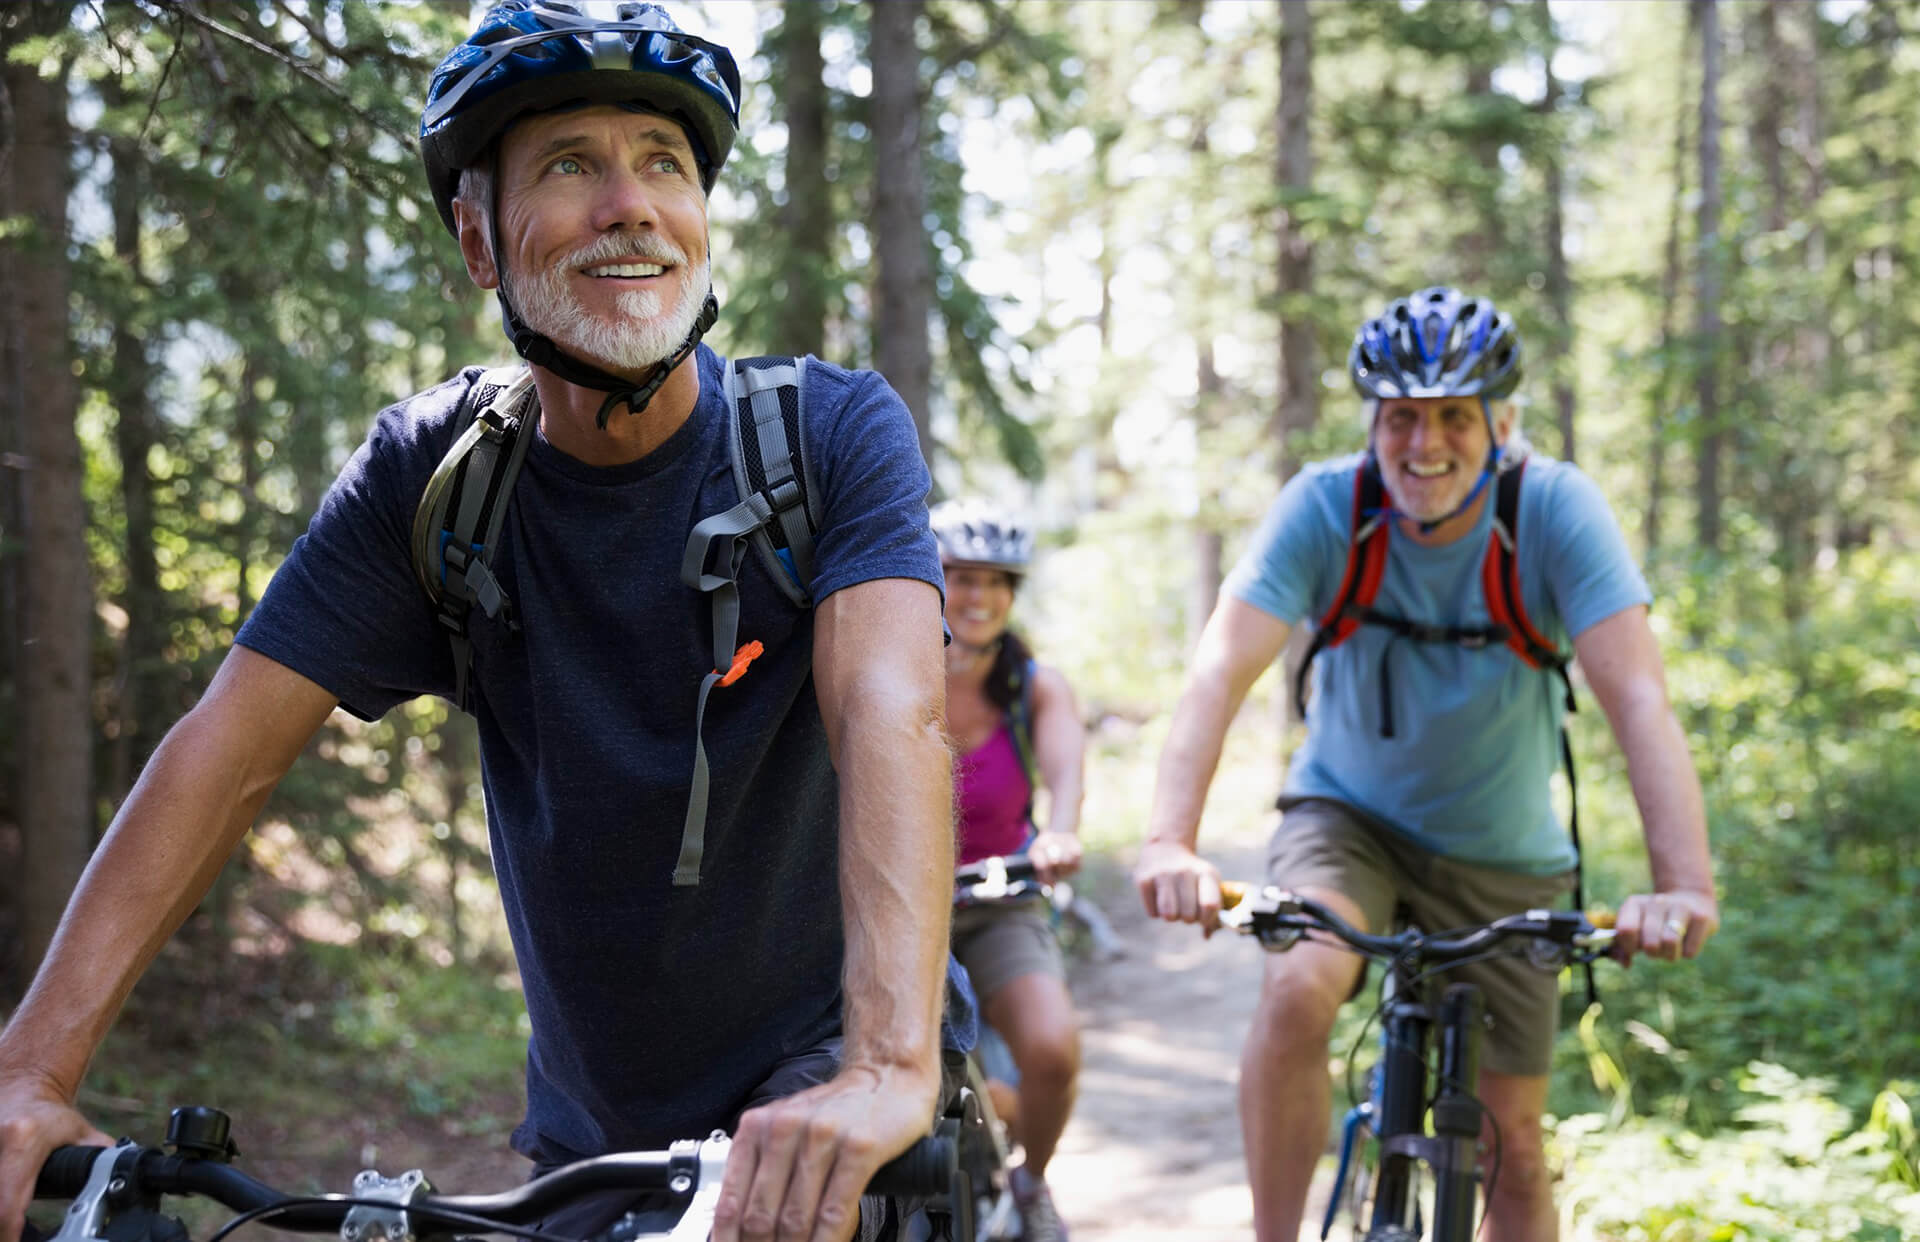 3 people in helmets riding their bikes through a forest trail